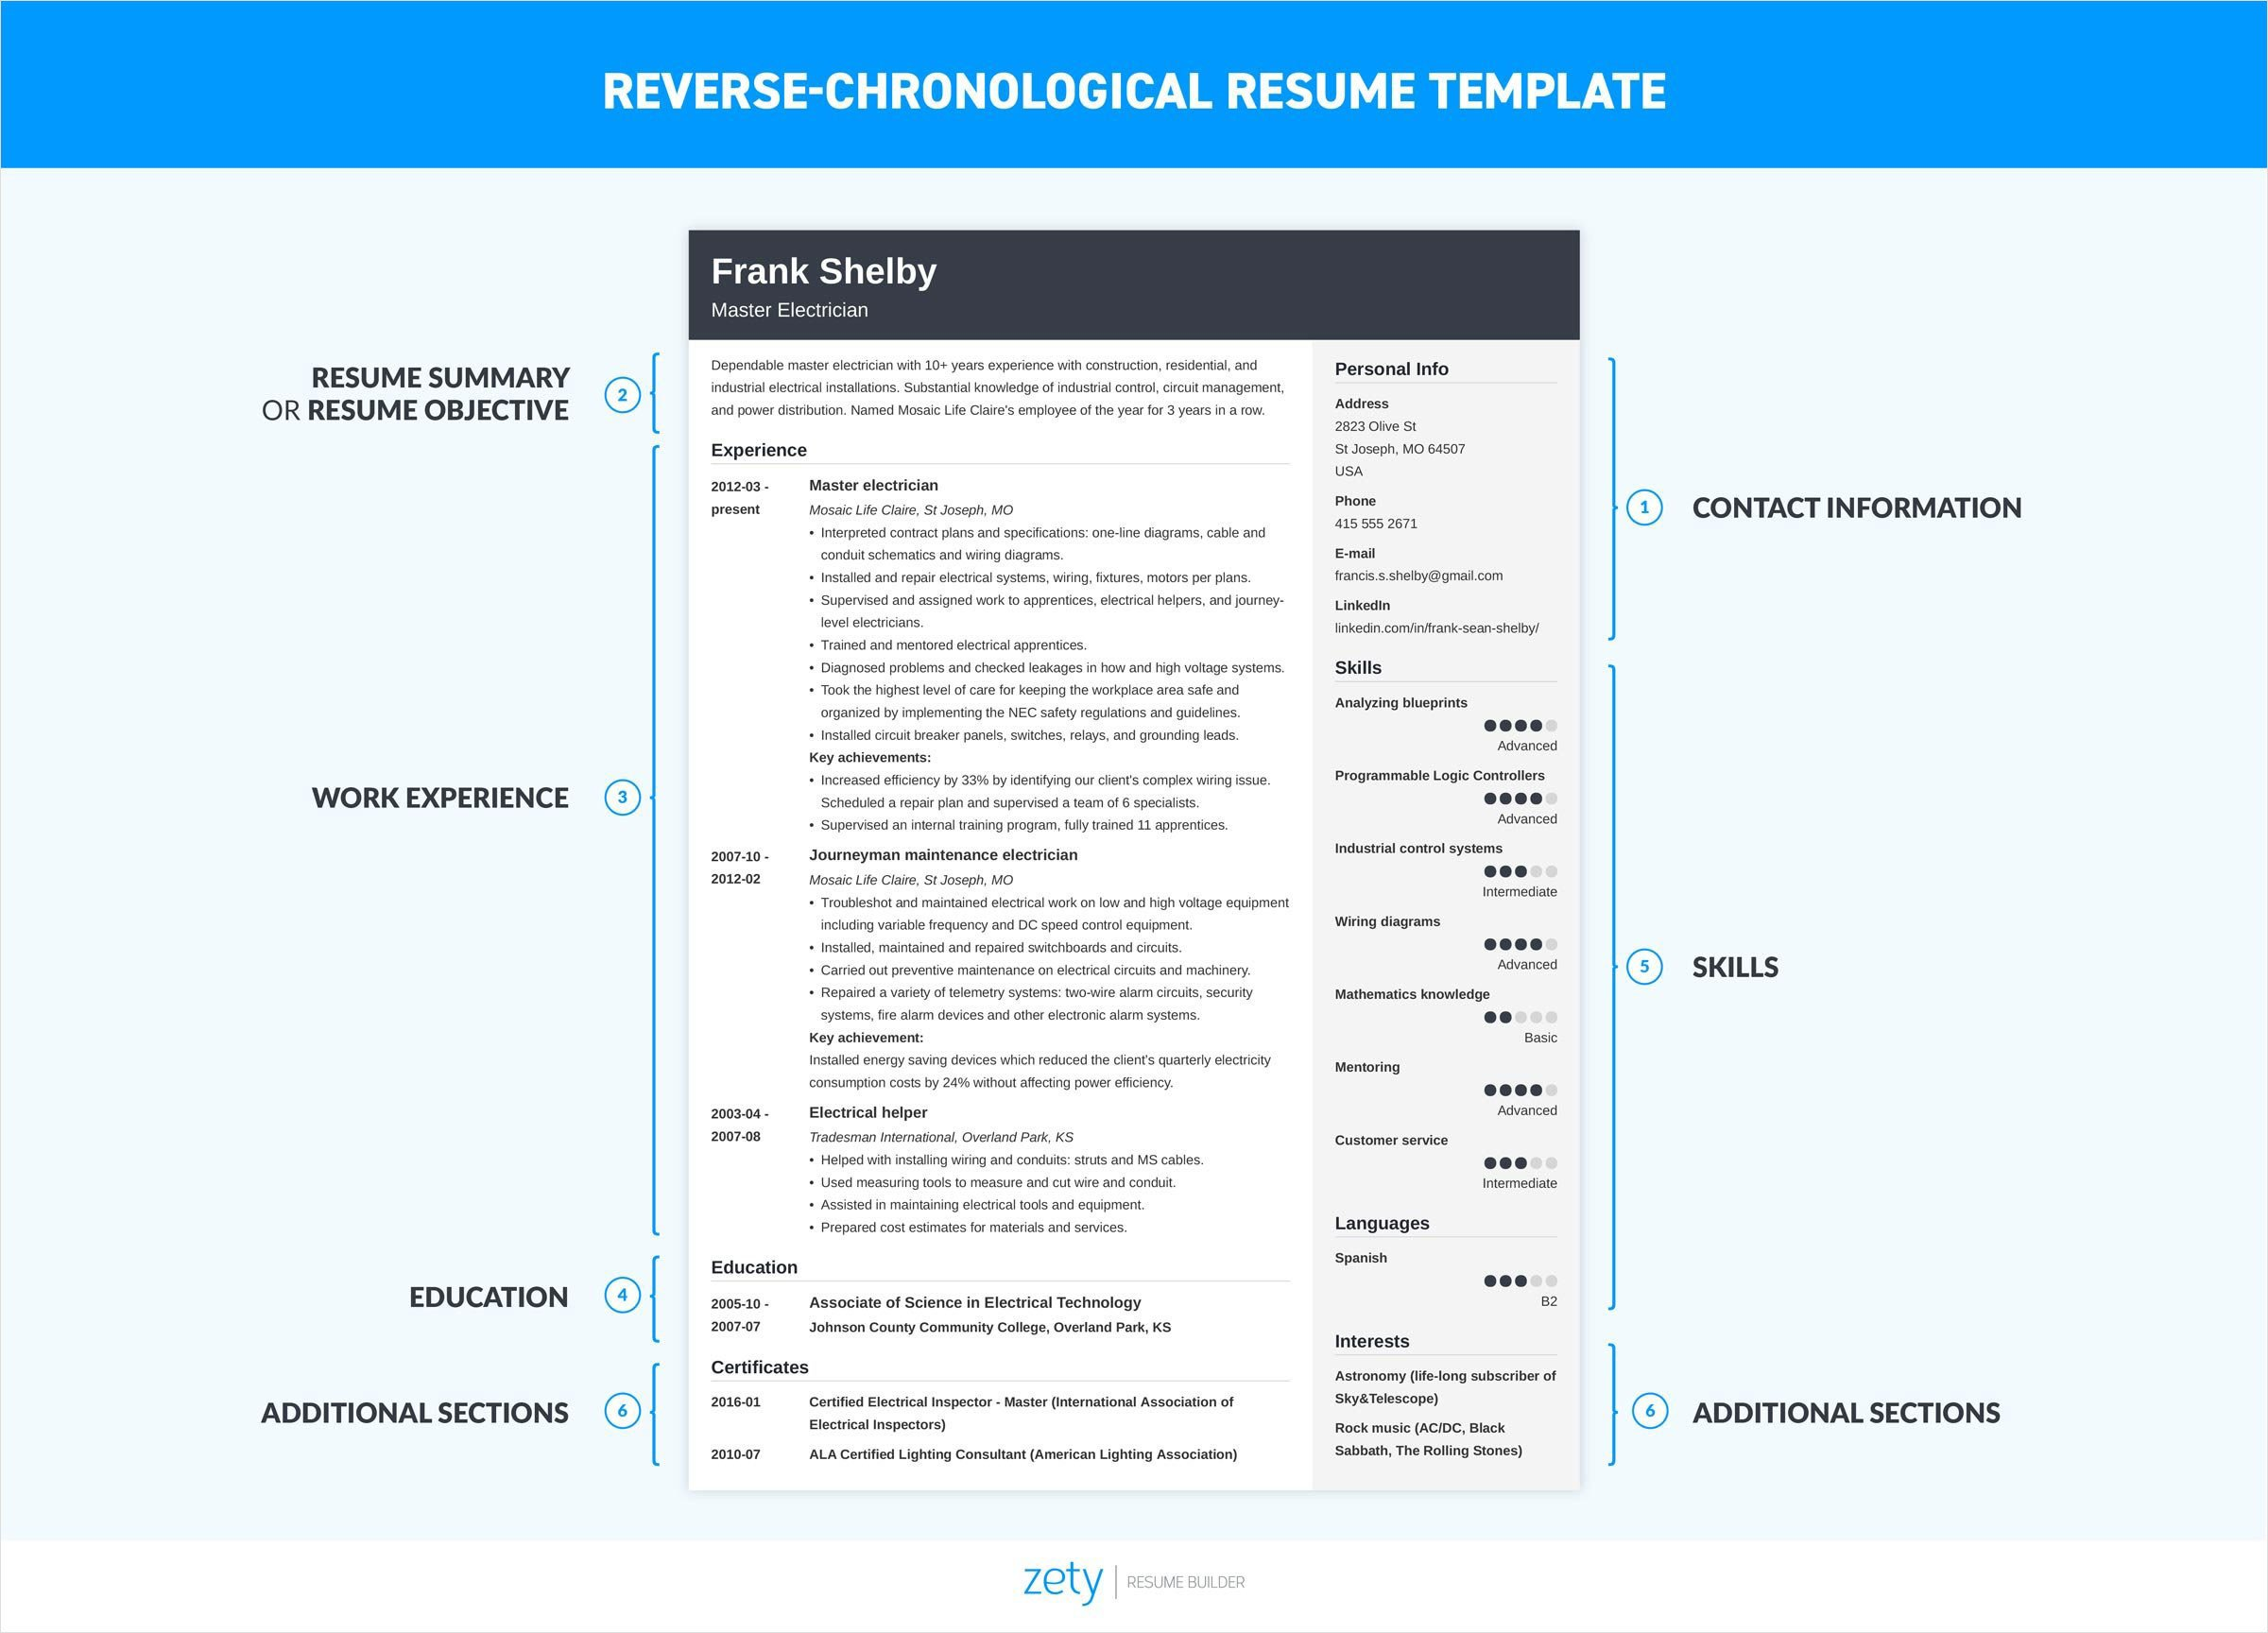 how to make a resume using the reverse chronological resume format - How To Create A Resume